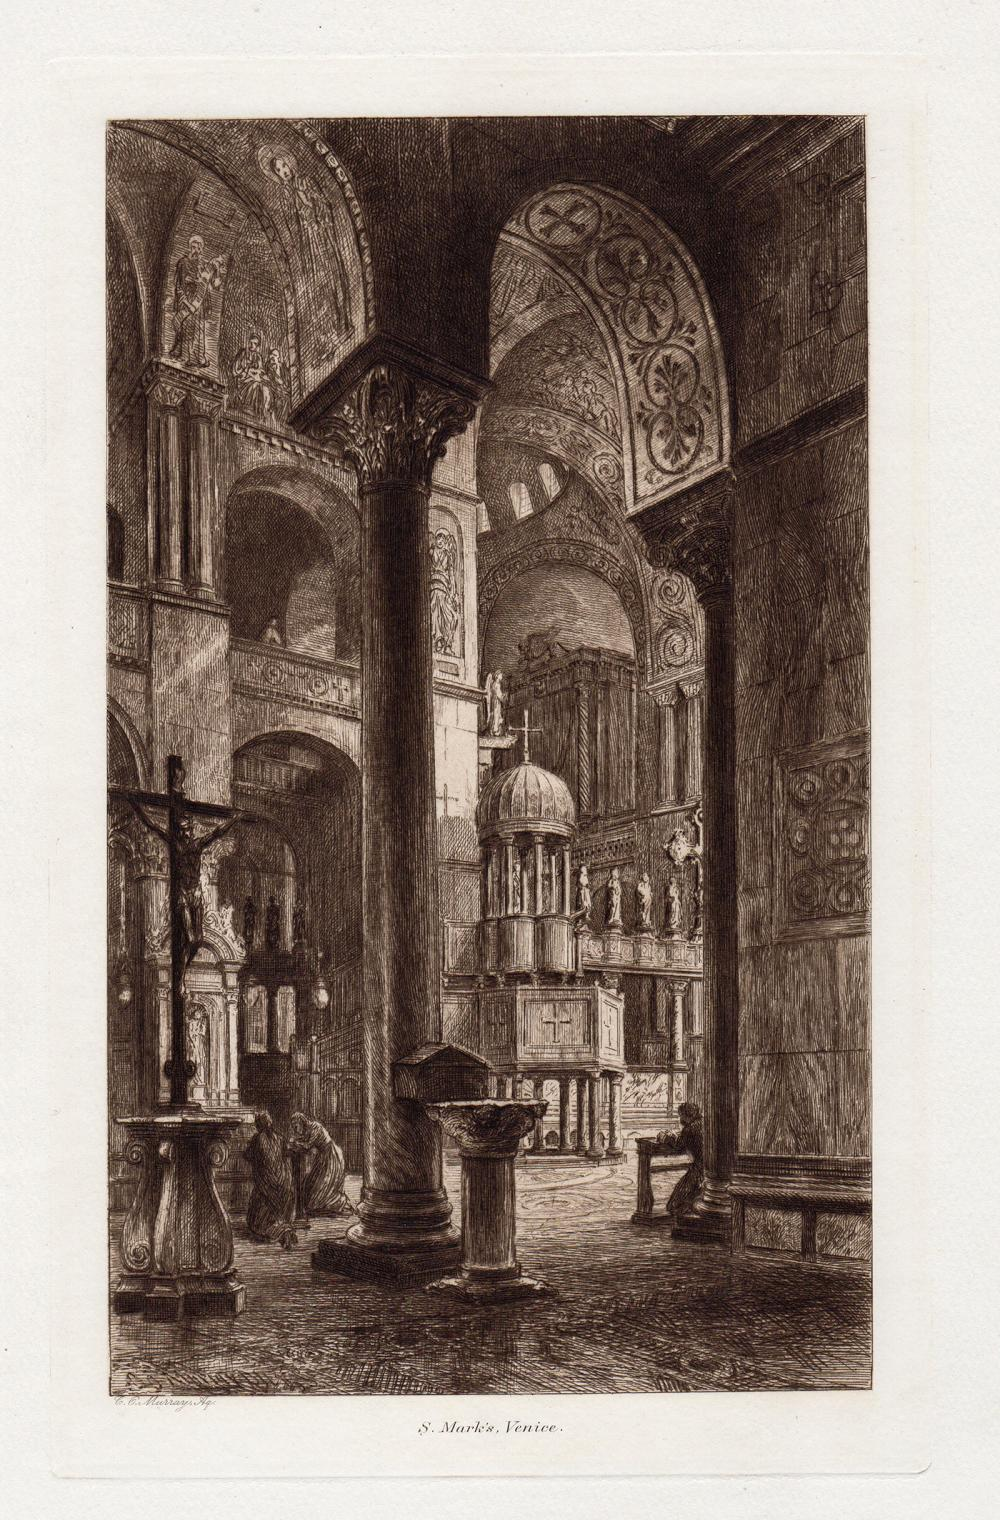 Charles Oliver Murray St. Mark's Venice etching signed